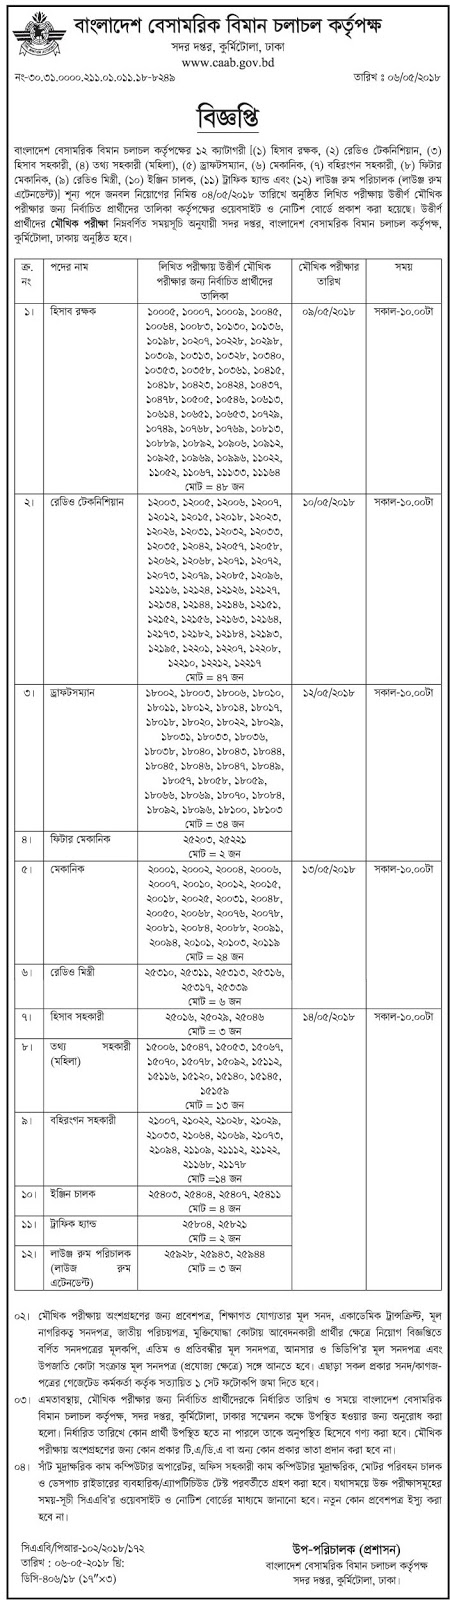 Civil Aviation Authority of Bangladesh Recruitment Exam Result and Viva Seat Plan